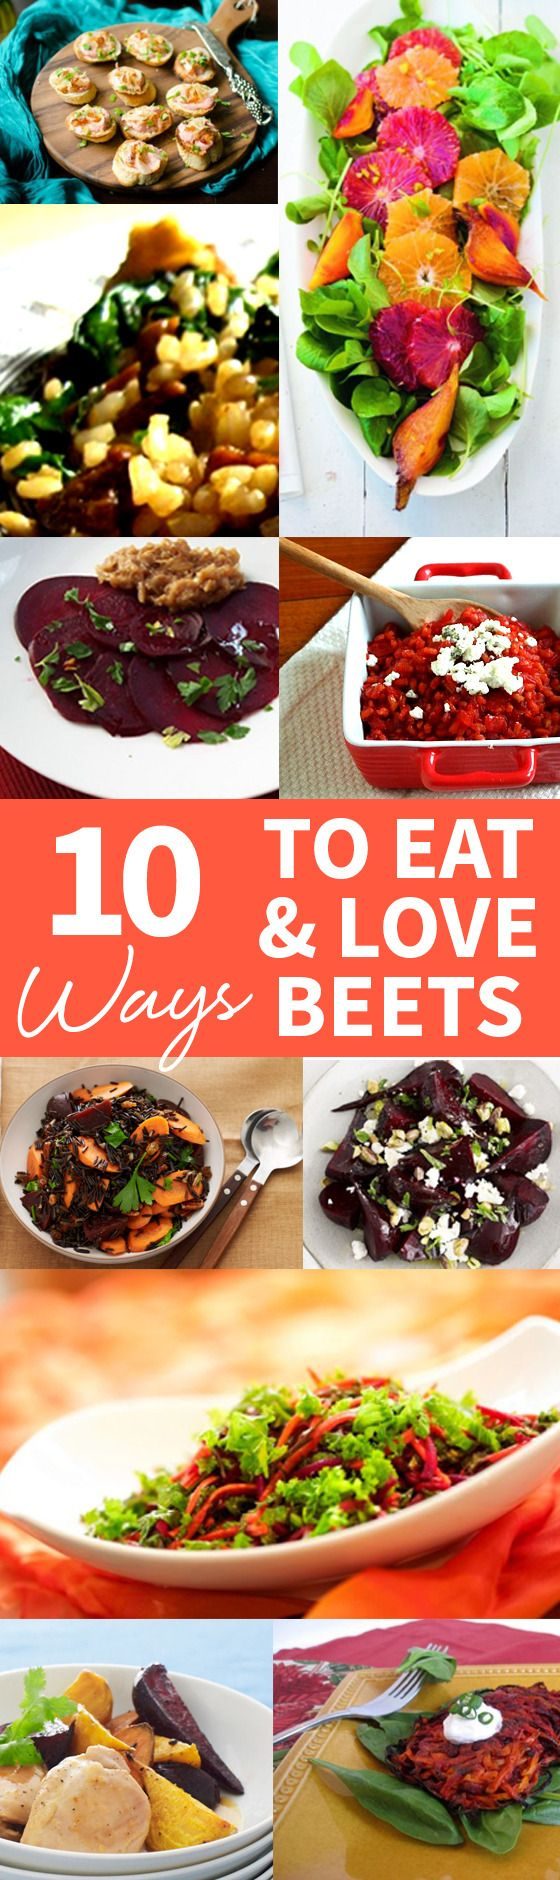 Don't be intimidated to cook with beets! We make it easy when you follow our 10 Ways To Eat & Love Beets article, see for yourself! http://www.joyofkosher.com/2014/01/10-ways-to-eat-and-love-beets/